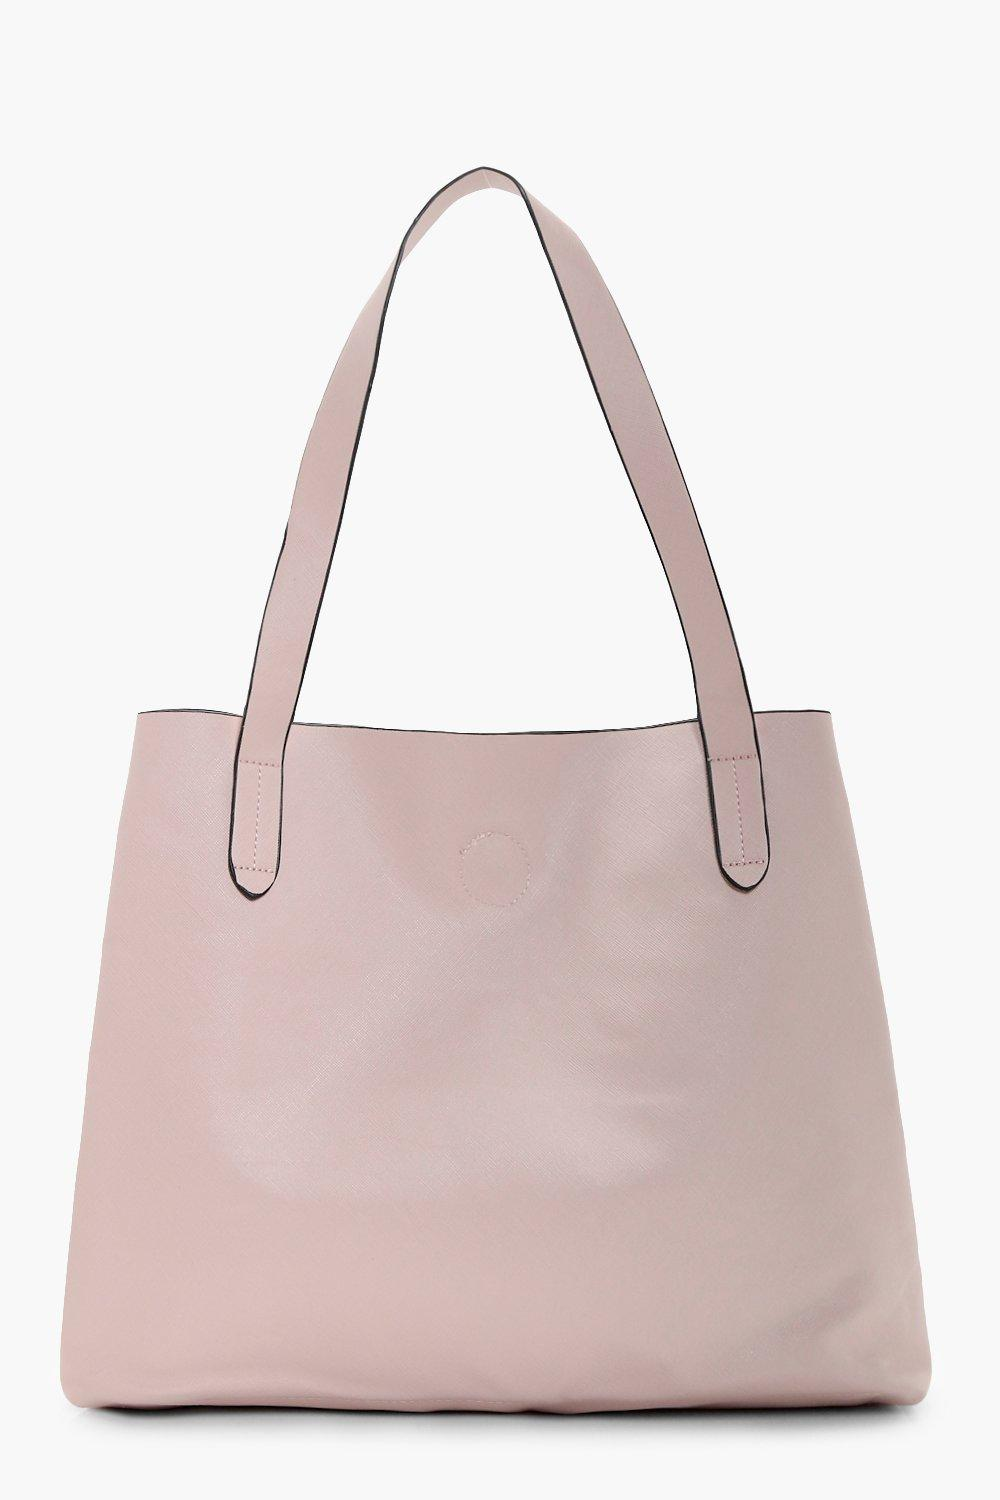 Crosshatch Popper Shopper - nude - Hettie Crosshat